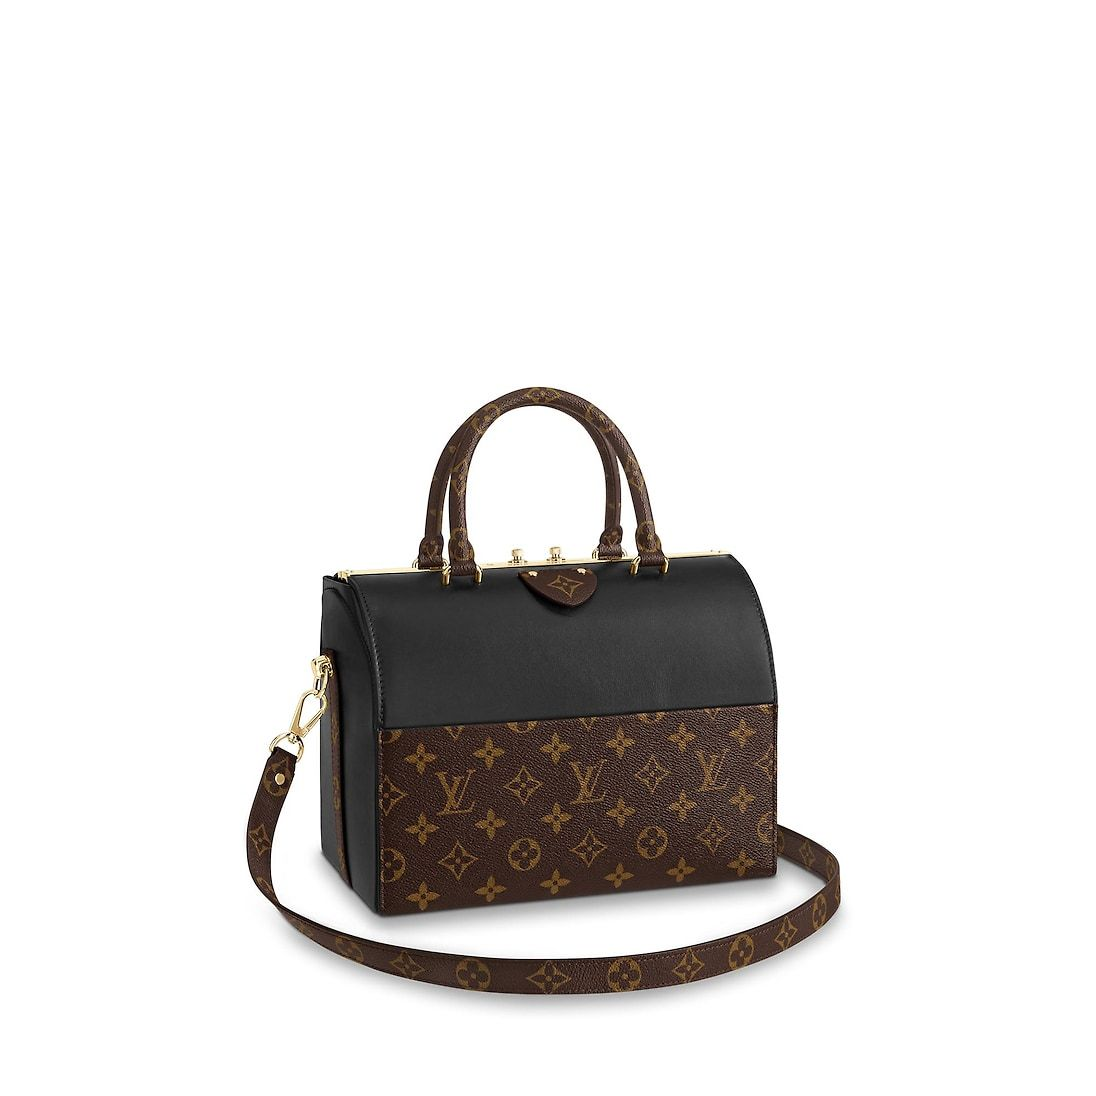 View 1 - Other leathers HANDBAGS Top Handles Speedy Doctor 25   Louis  Vuitton ® 6fbc5f67cc